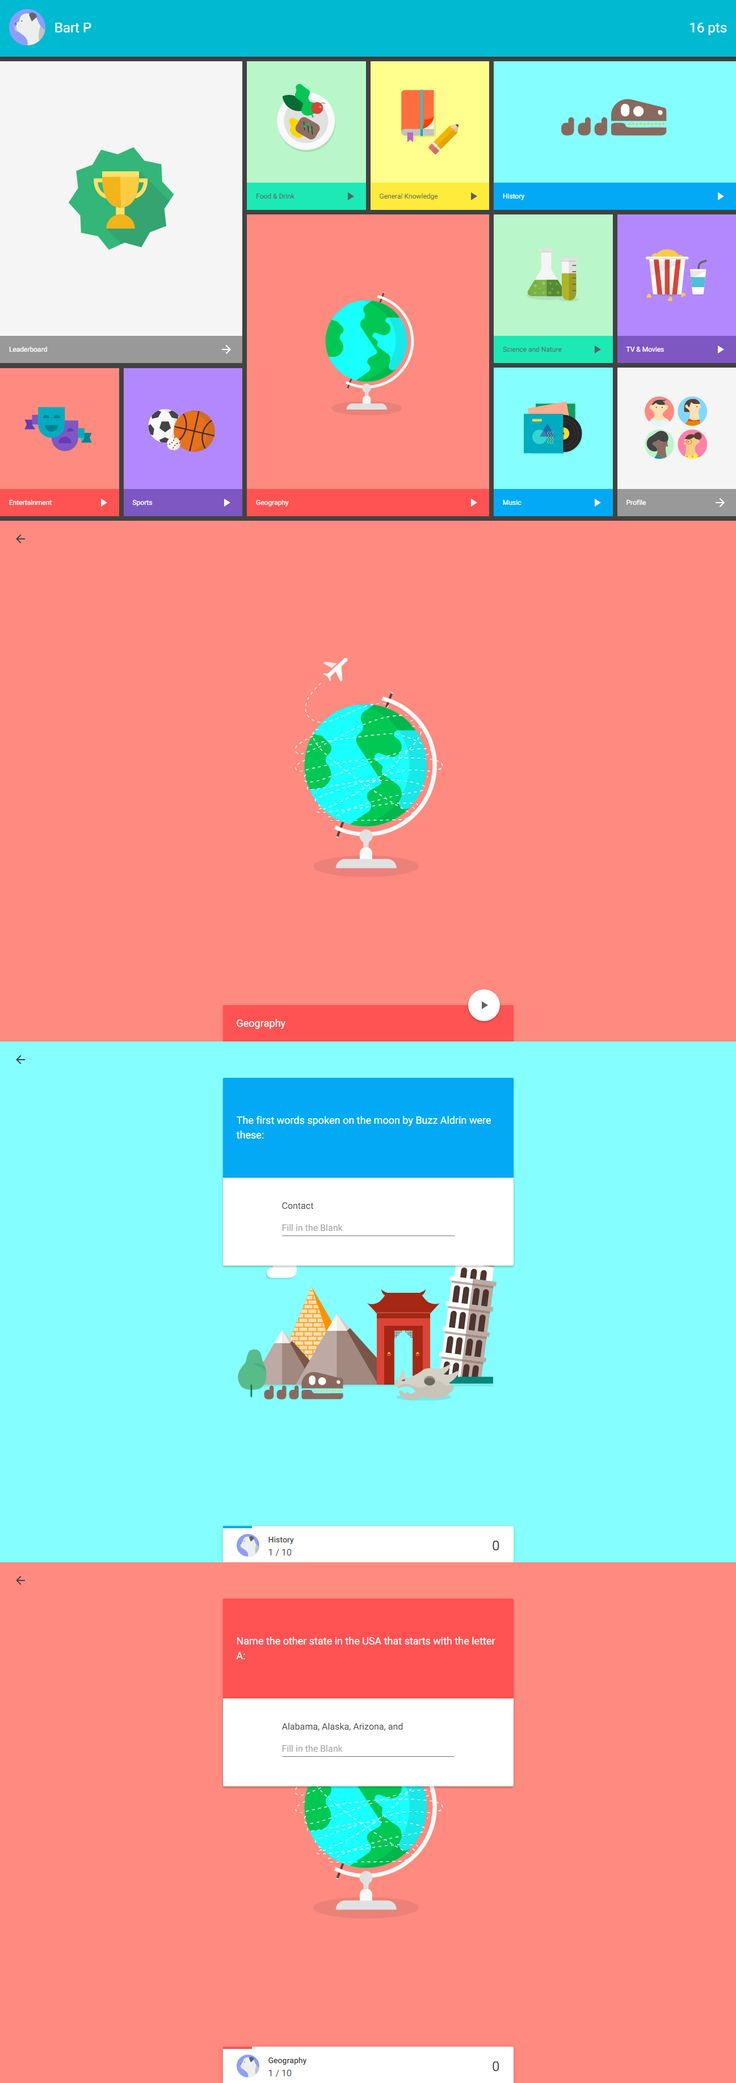 Quiz App made with Material Design